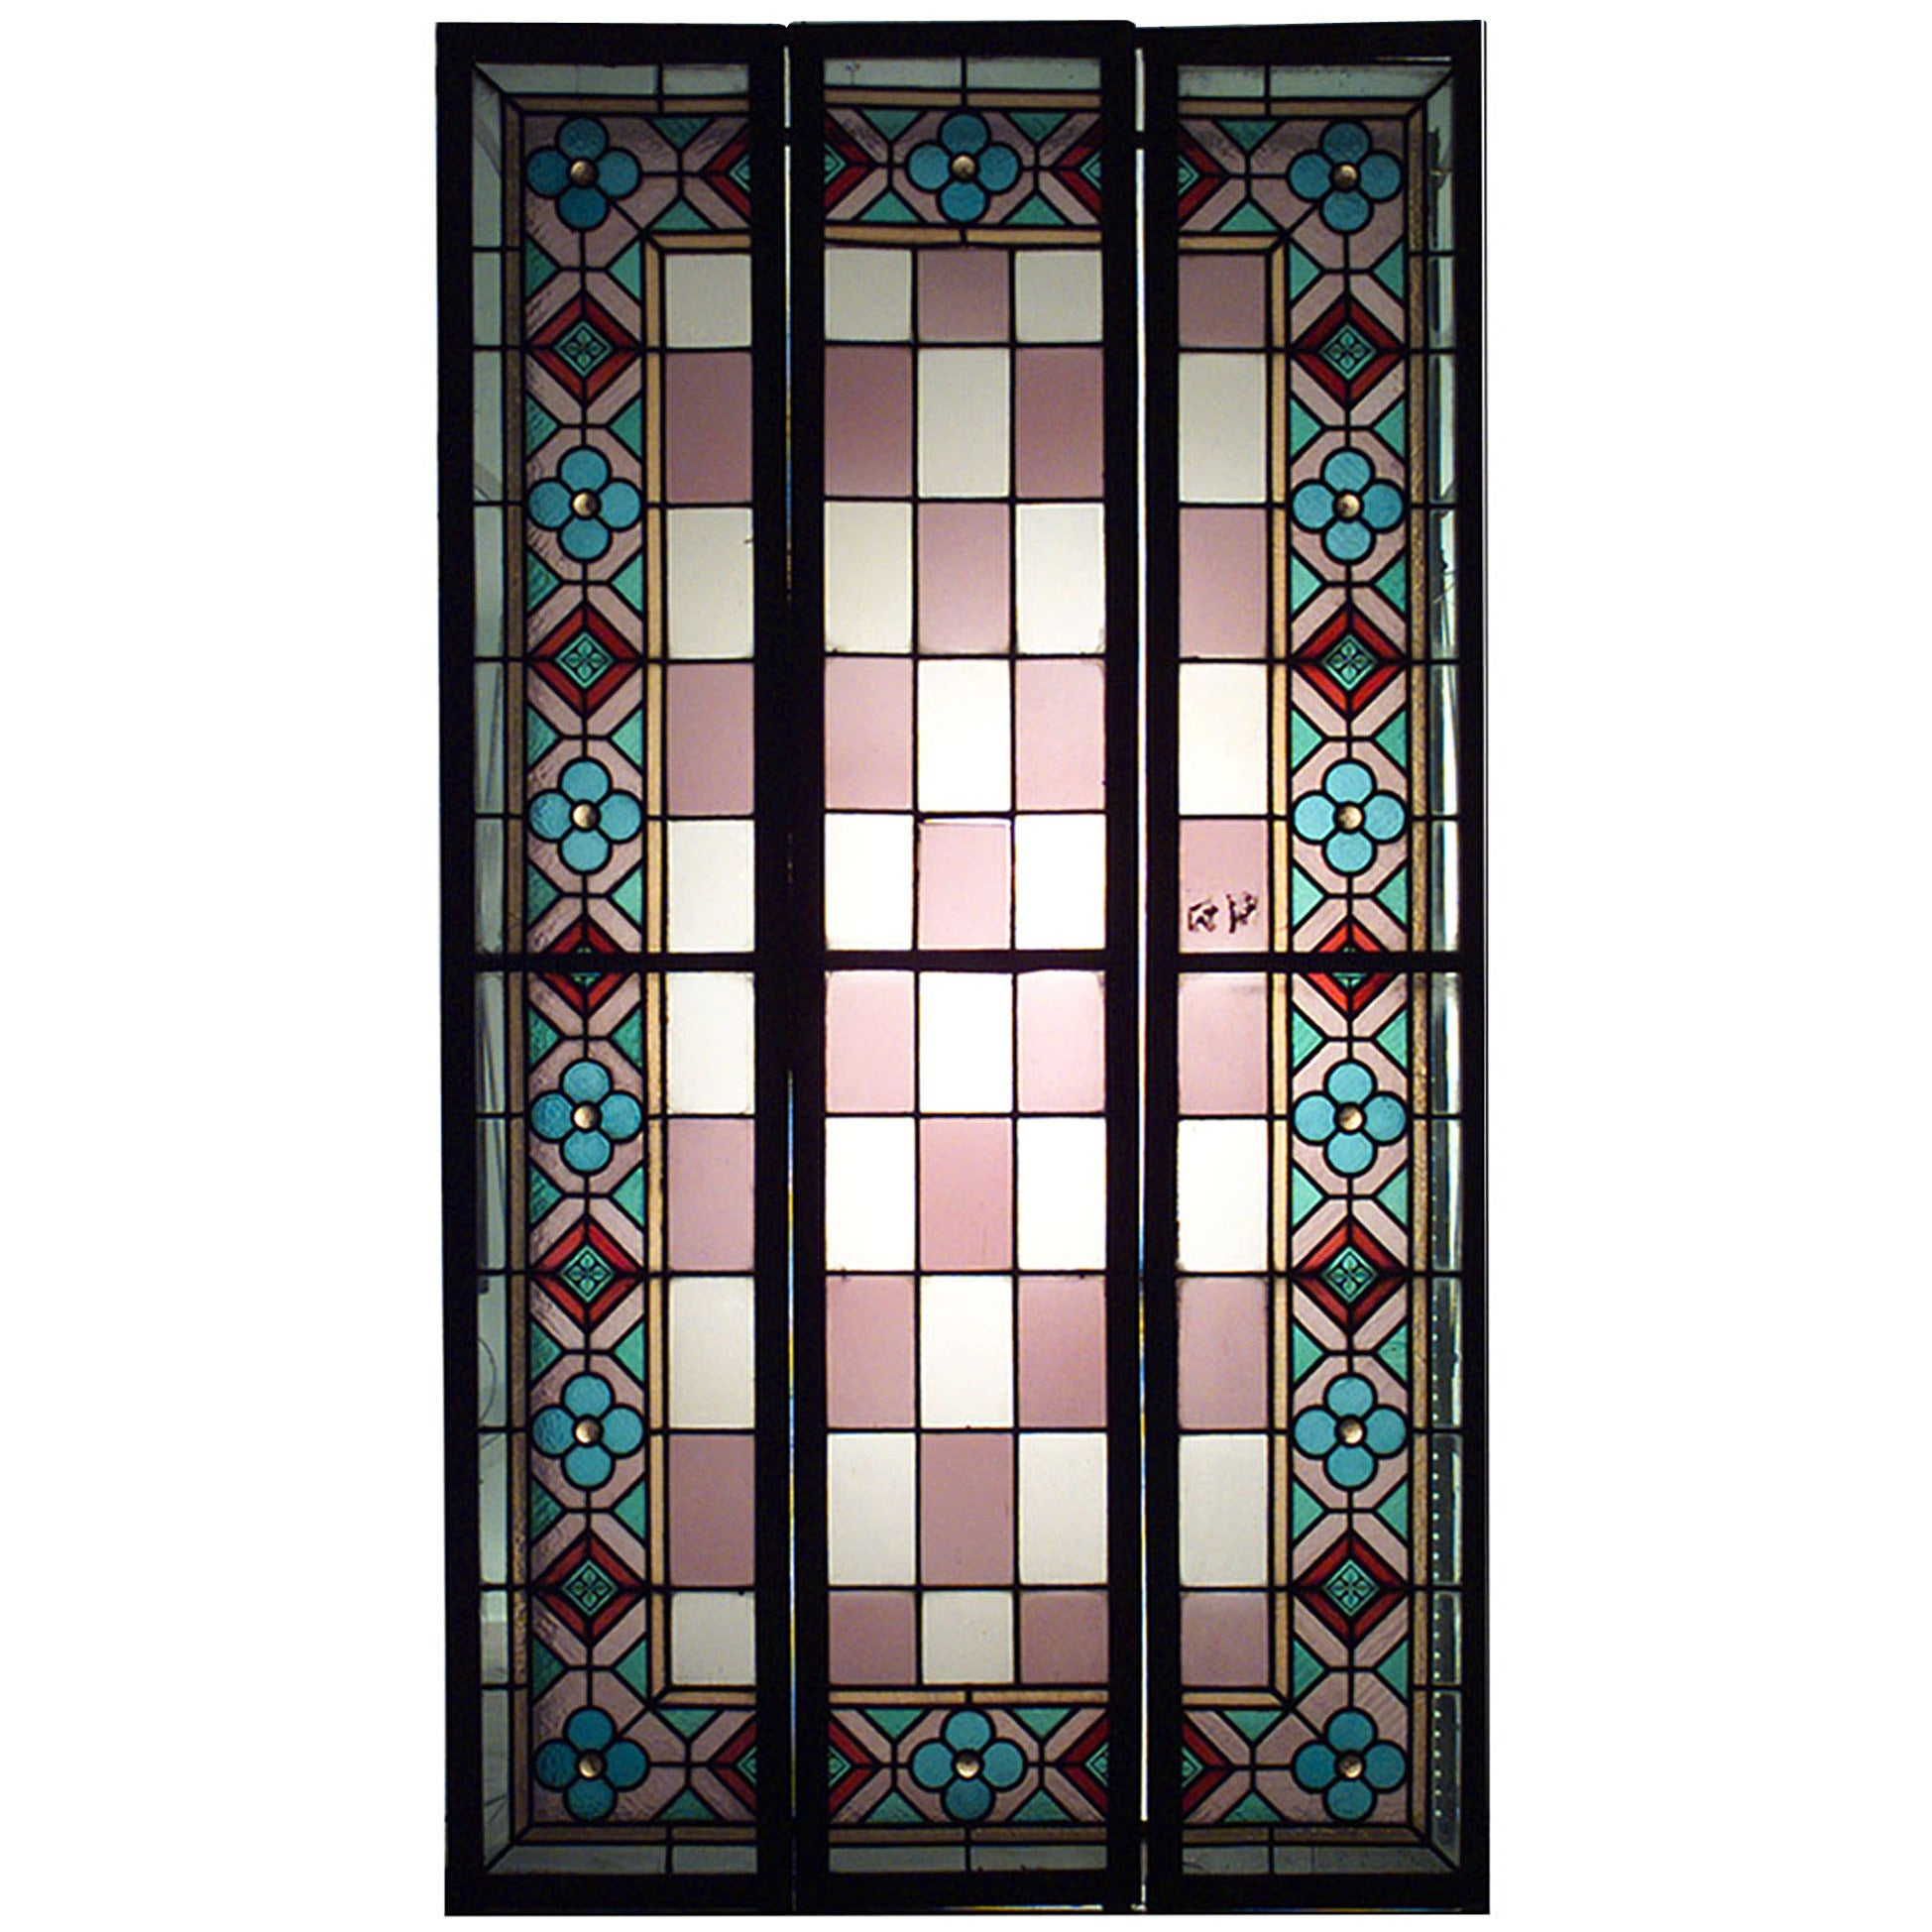 Set of 3 English Arts & Crafts Stained Glass Windows